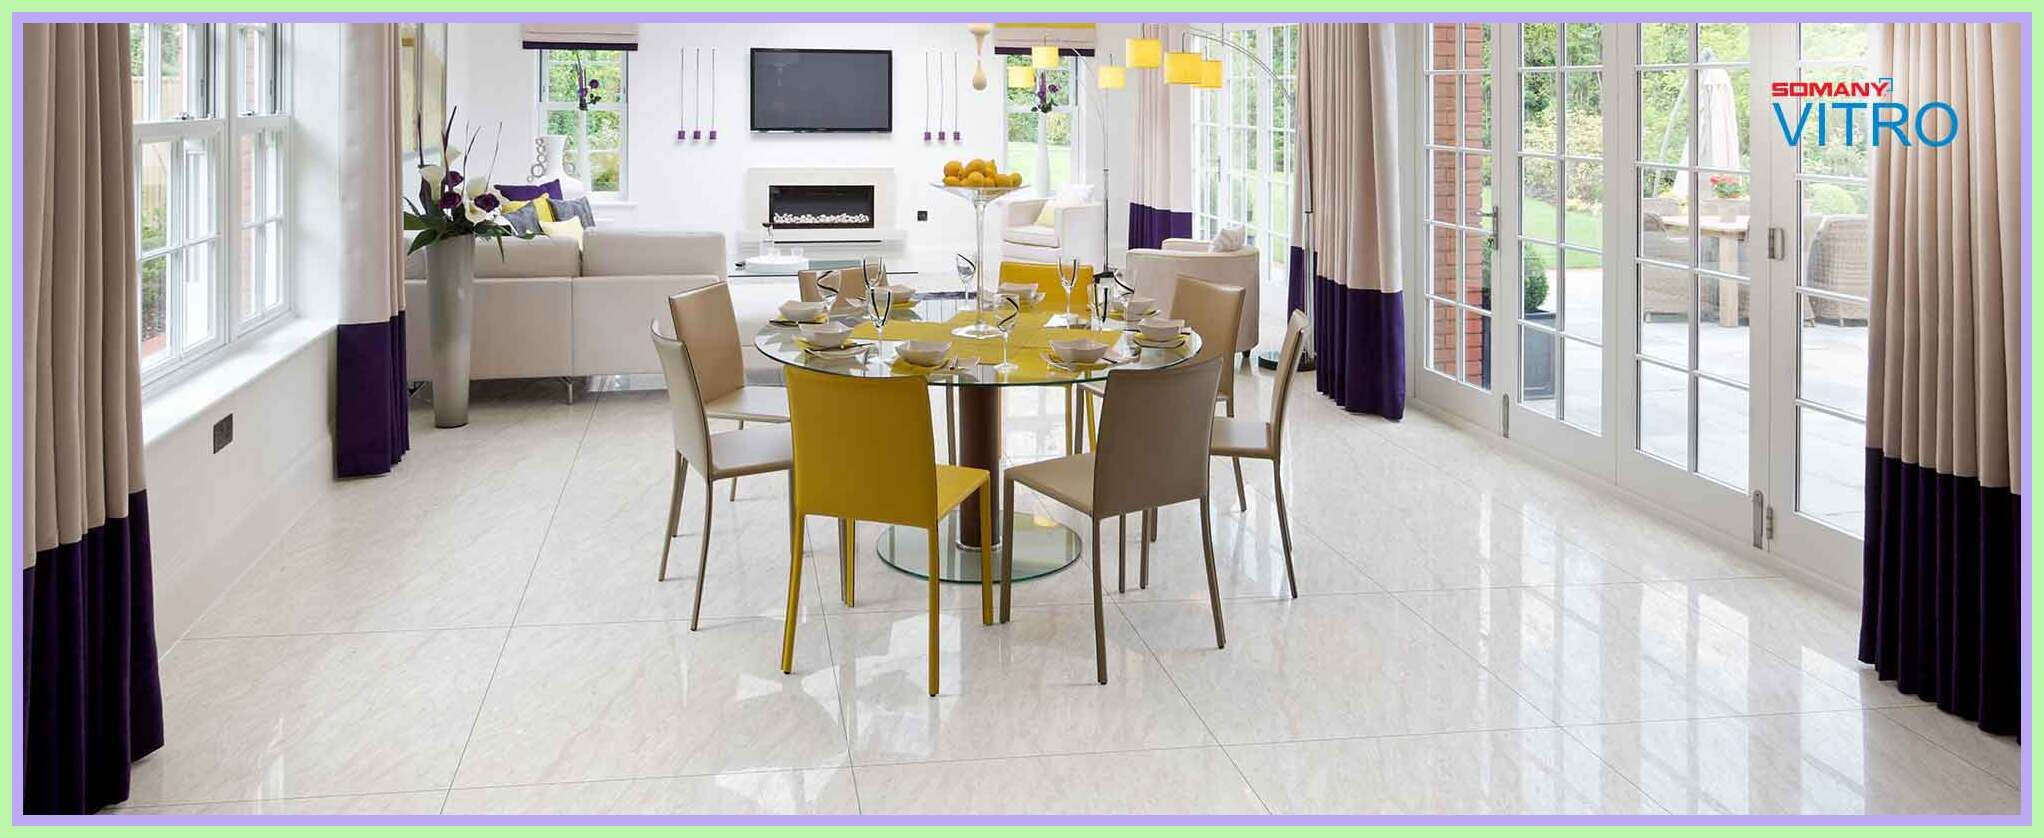 40 reference of bedroom floor tiles price in india in 2020